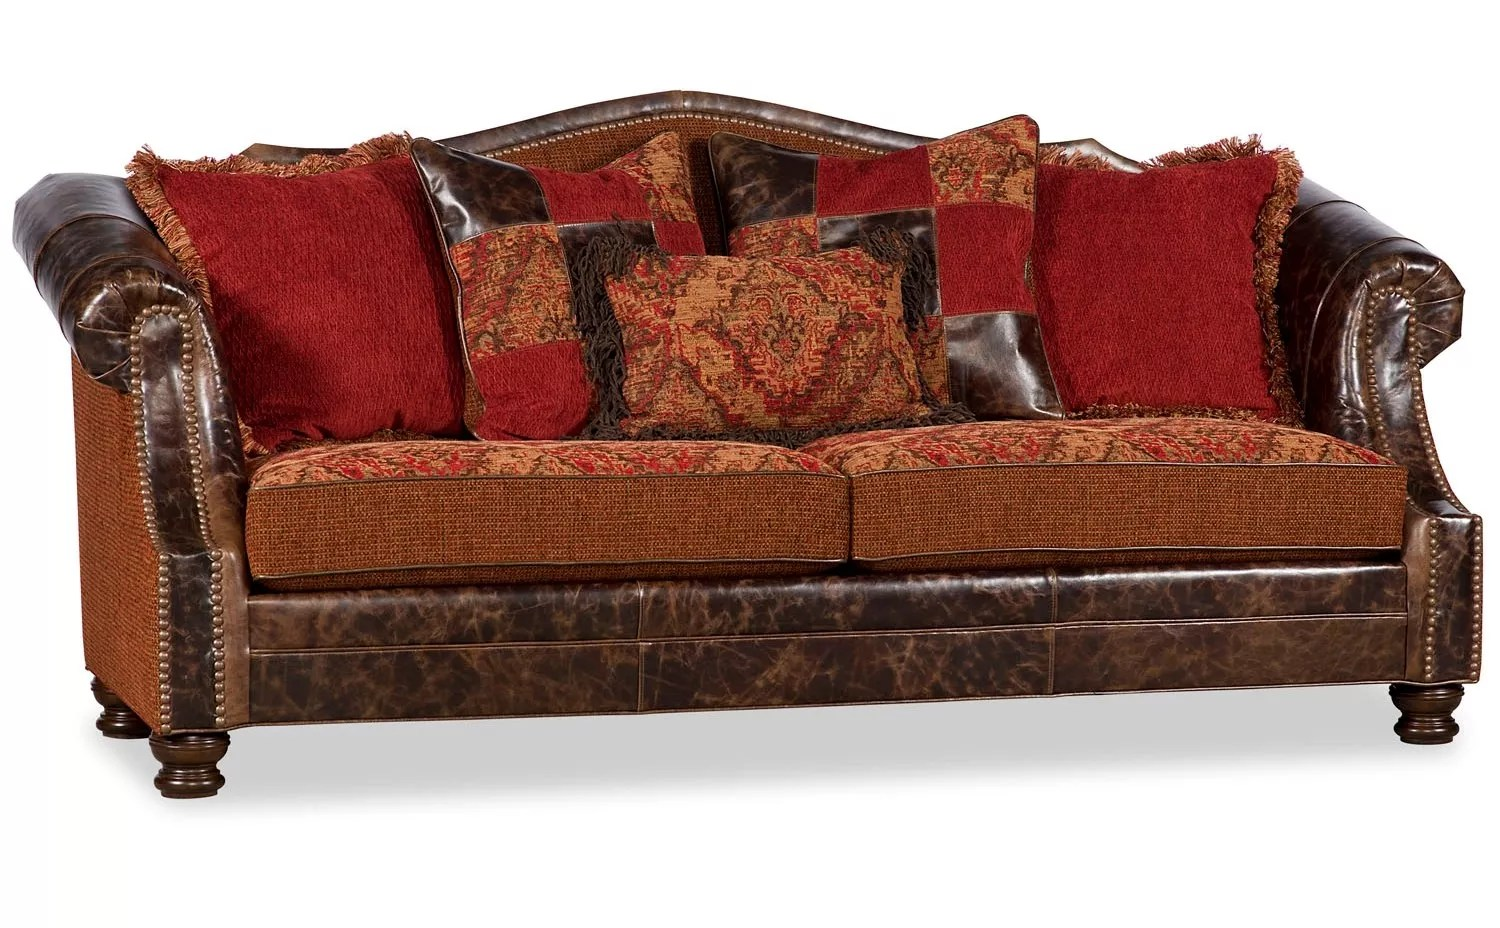 western style sofa covers sectional sofas with electric recliners southwestern arizona southwest living room couches